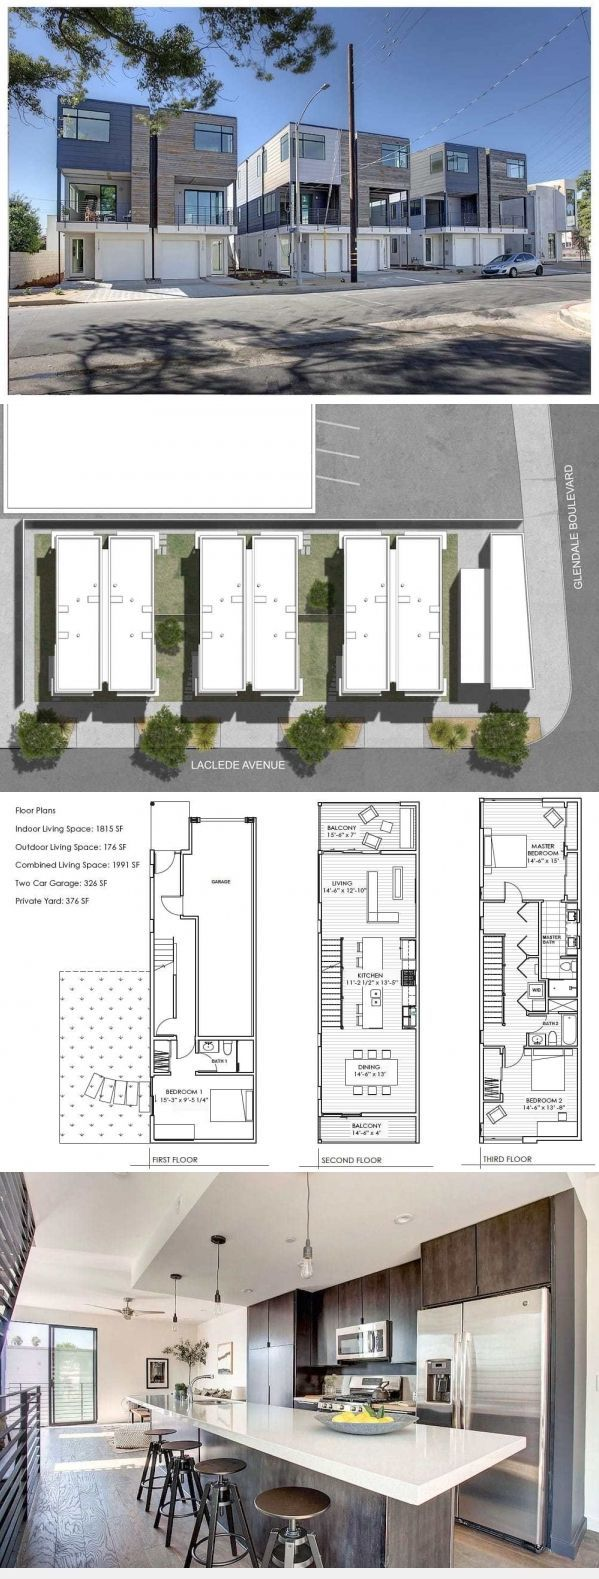 Container House Plano Cabañas hotel Who Else Wants Simple Step-By-Step Plan